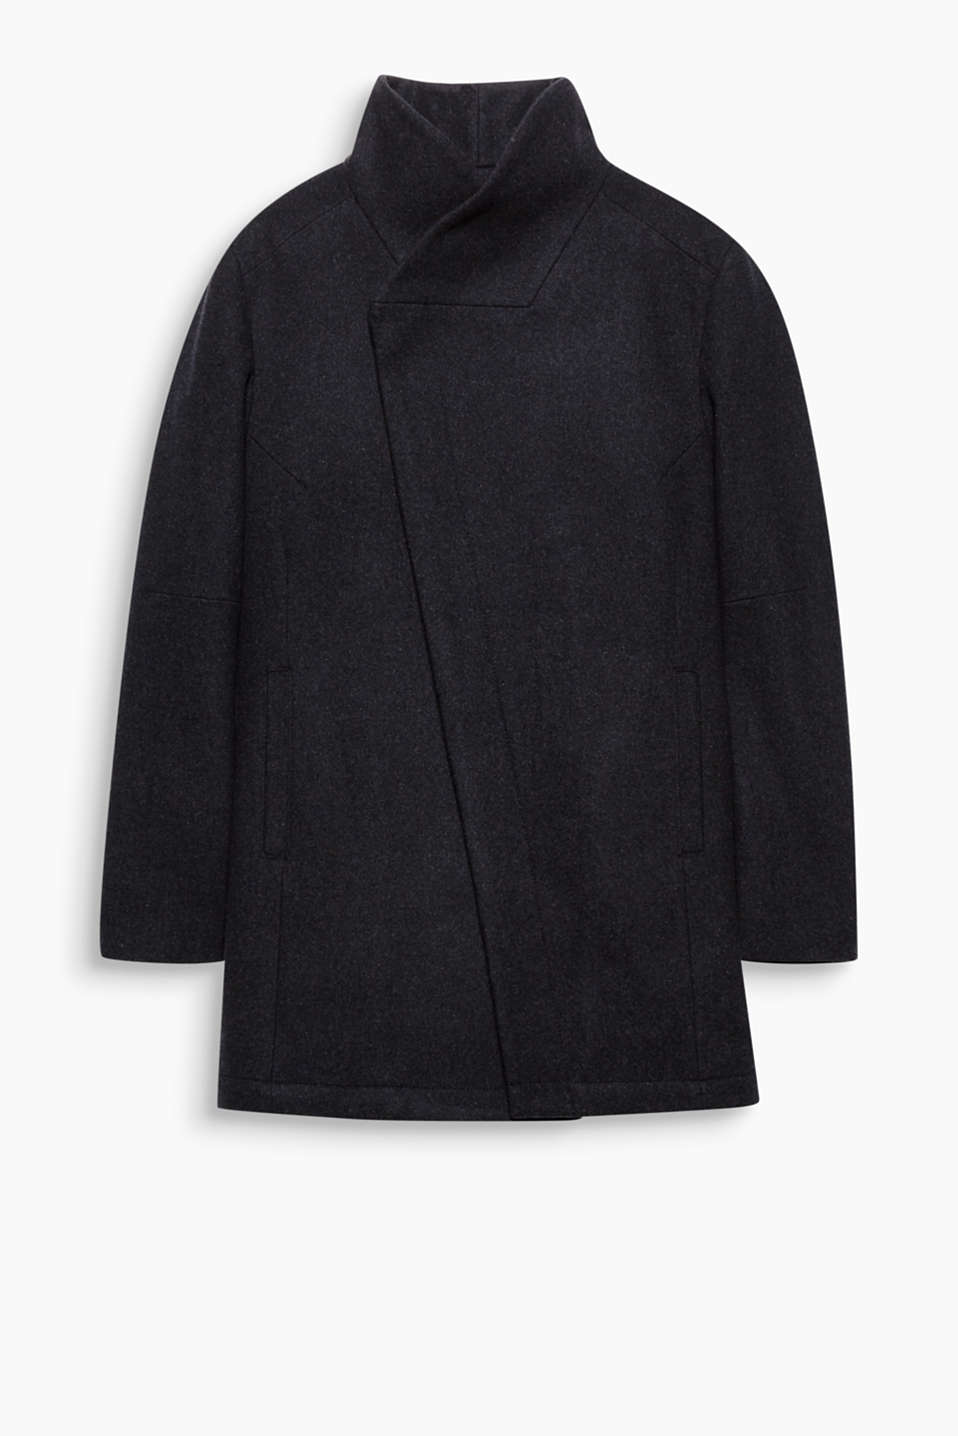 A real highlight thanks to its wide, asymmetric collar! This coat in blended wool will become his season favourite.